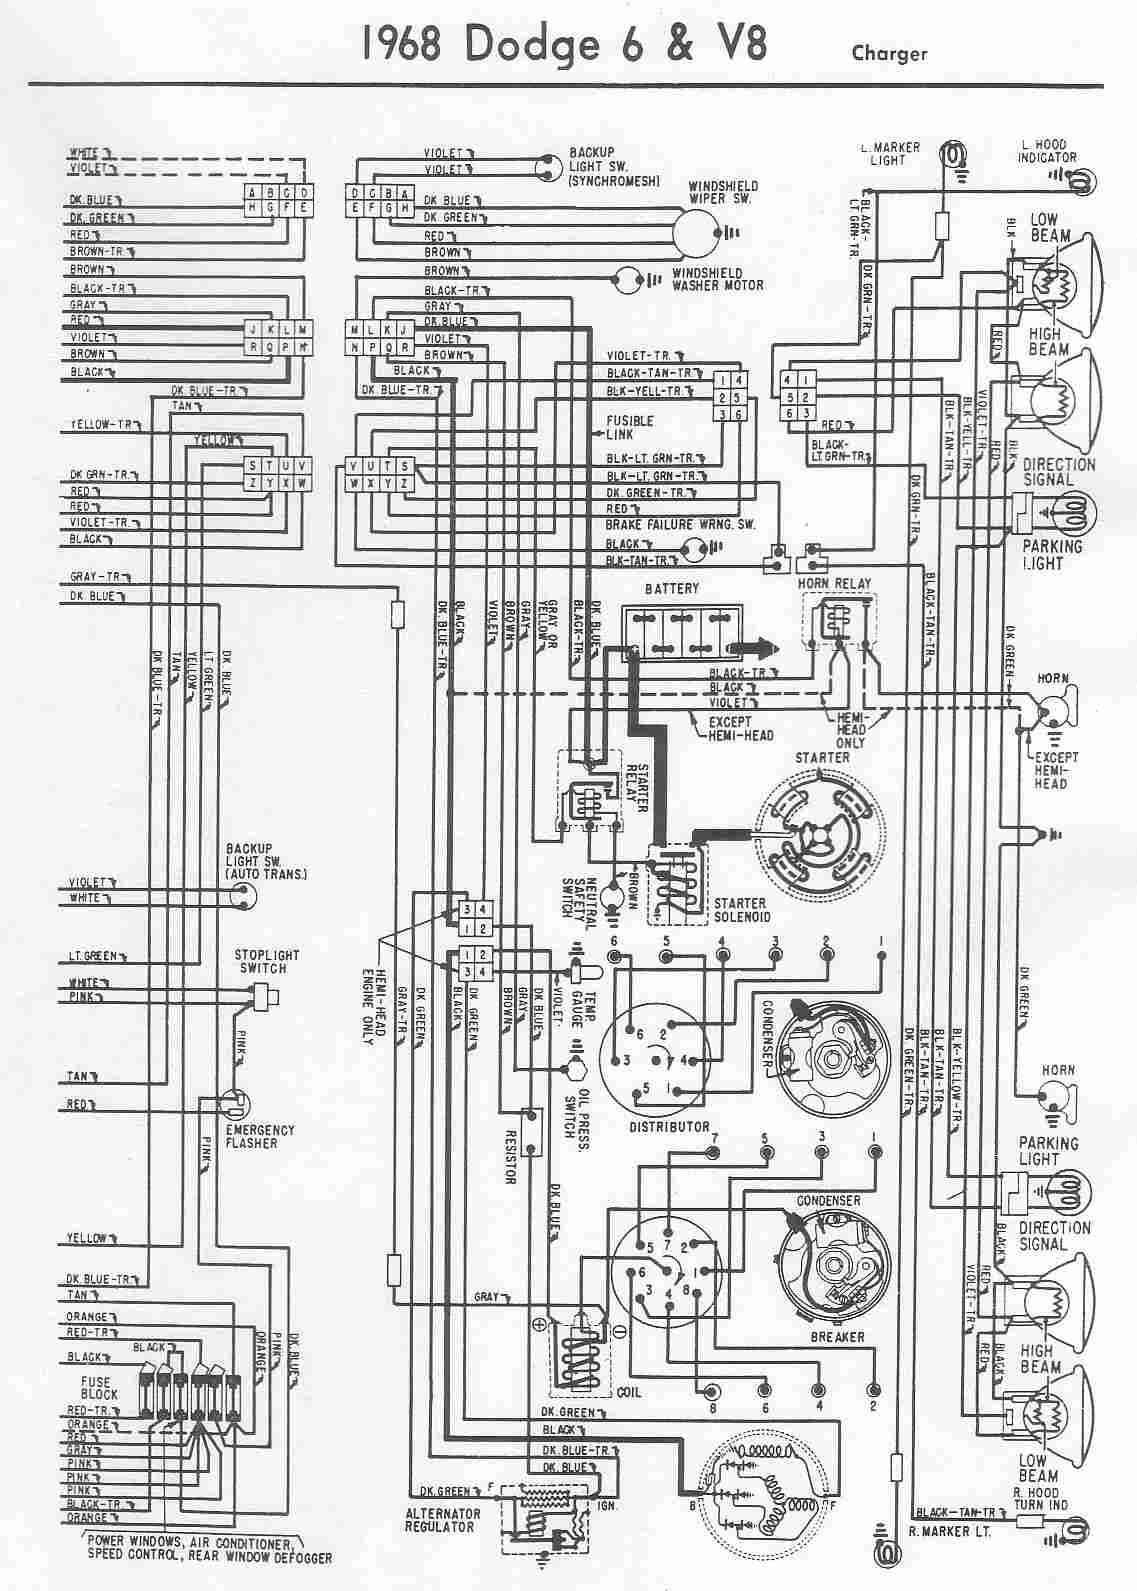 Dodge Car Manuals Wiring Diagrams Pdf Fault Codes 2000 Mazda Mpv Diagram Schematic Download